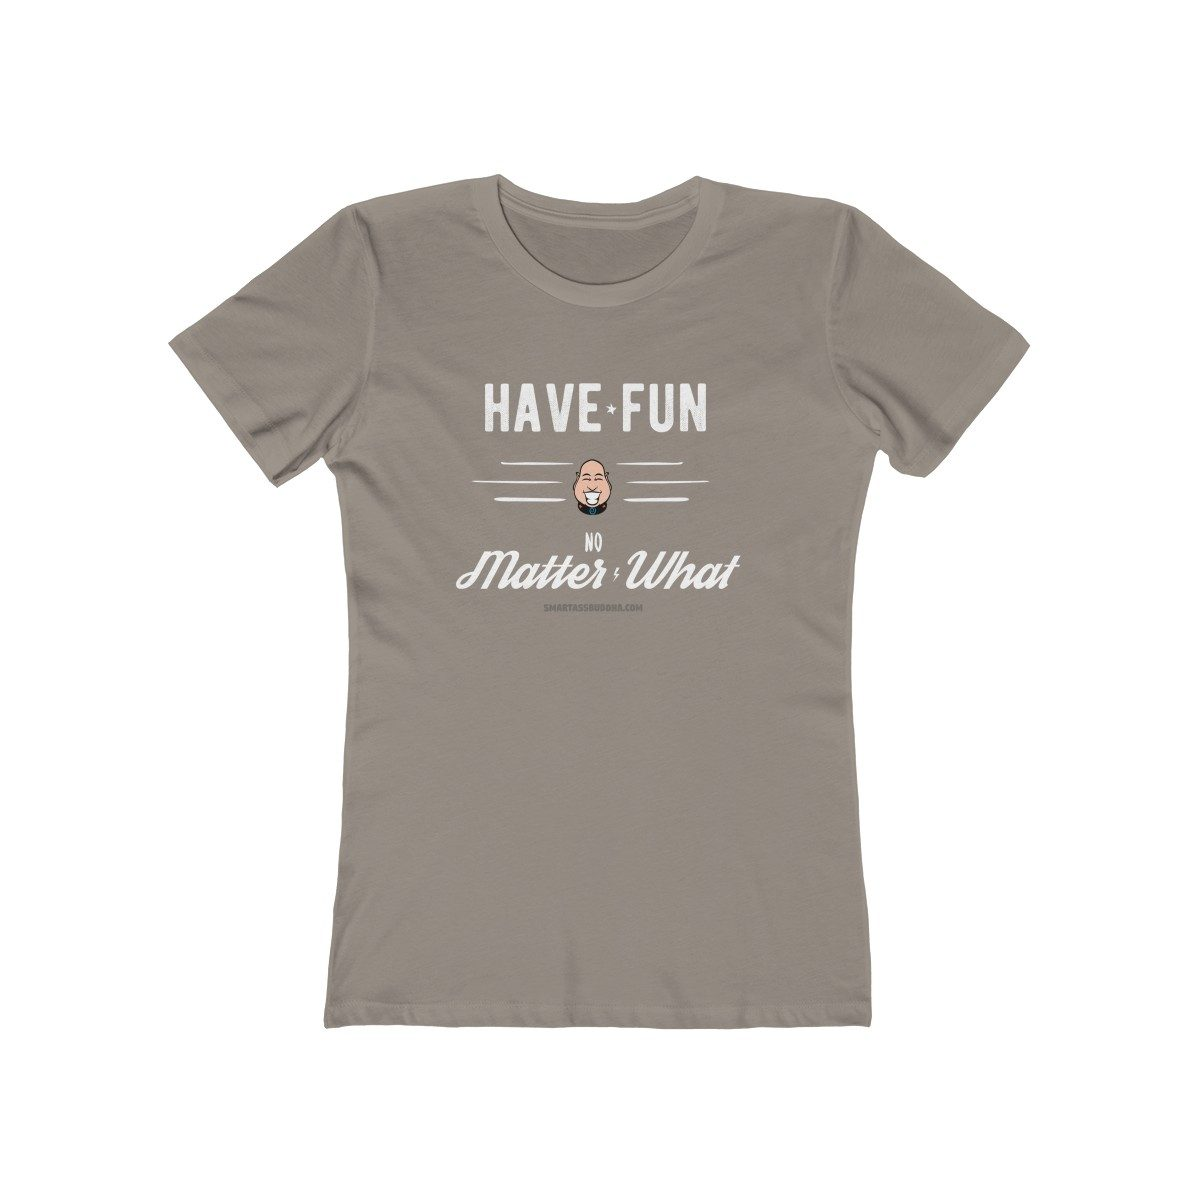 have-fun-no-matter-what-ladies-tshirt-funky-cool-gift-positive-message-mantra-grey